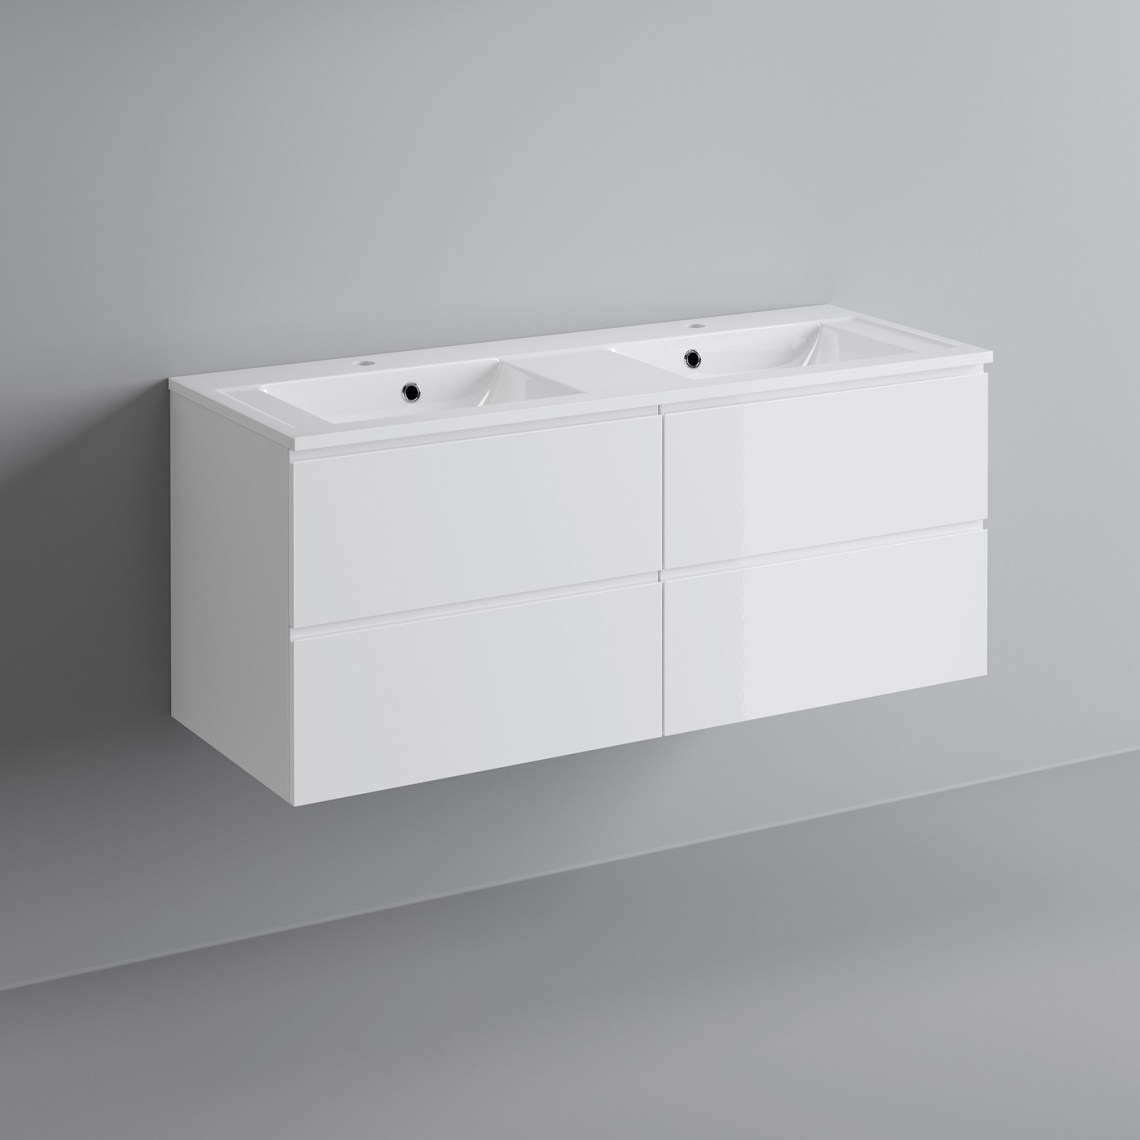 Image Result For Toilet And Basin Unit Uk